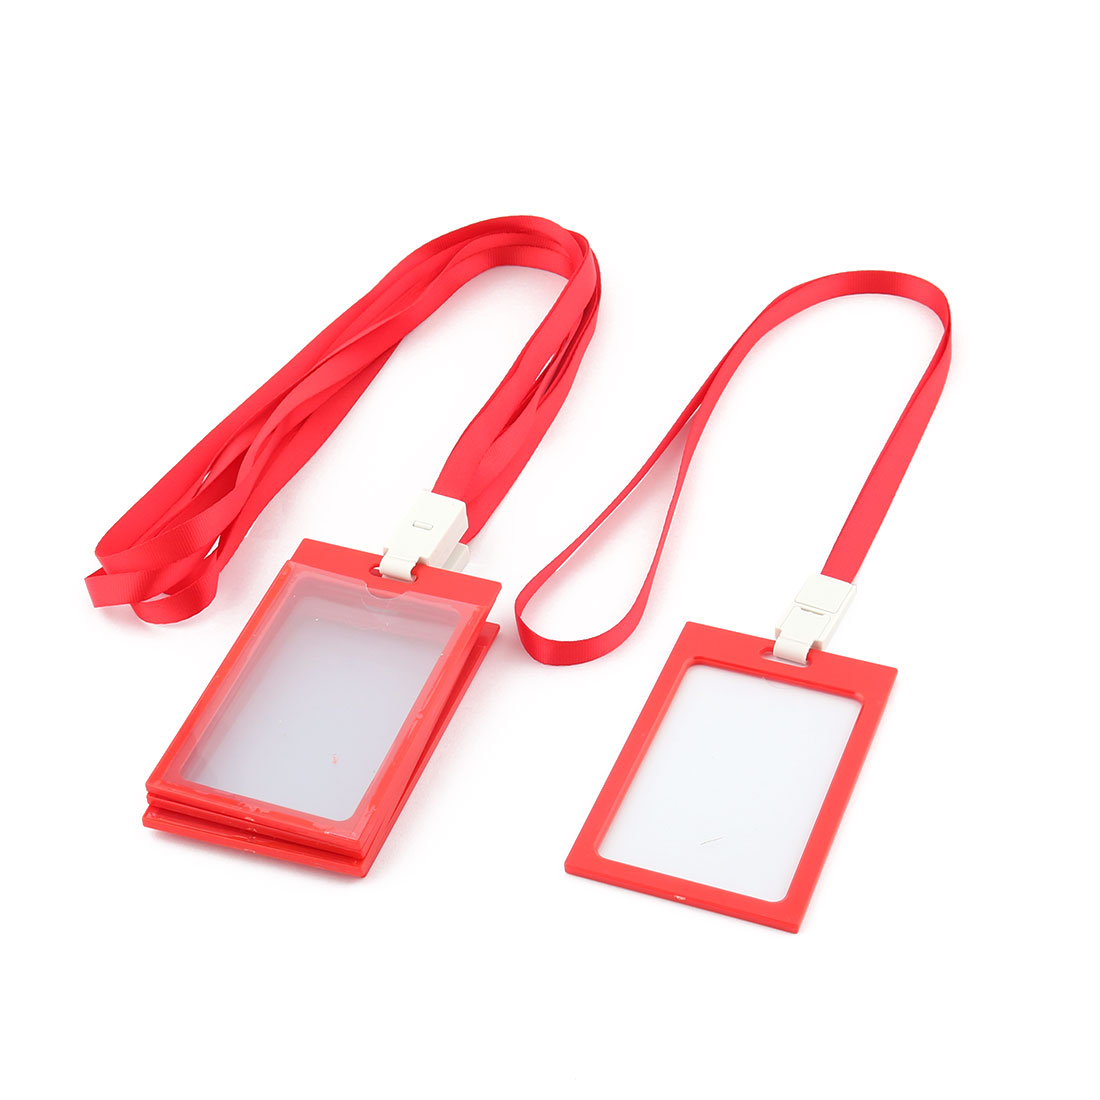 Office School Neck String Lanyard Vertical ID Card Holder Container Red 5 Pcs